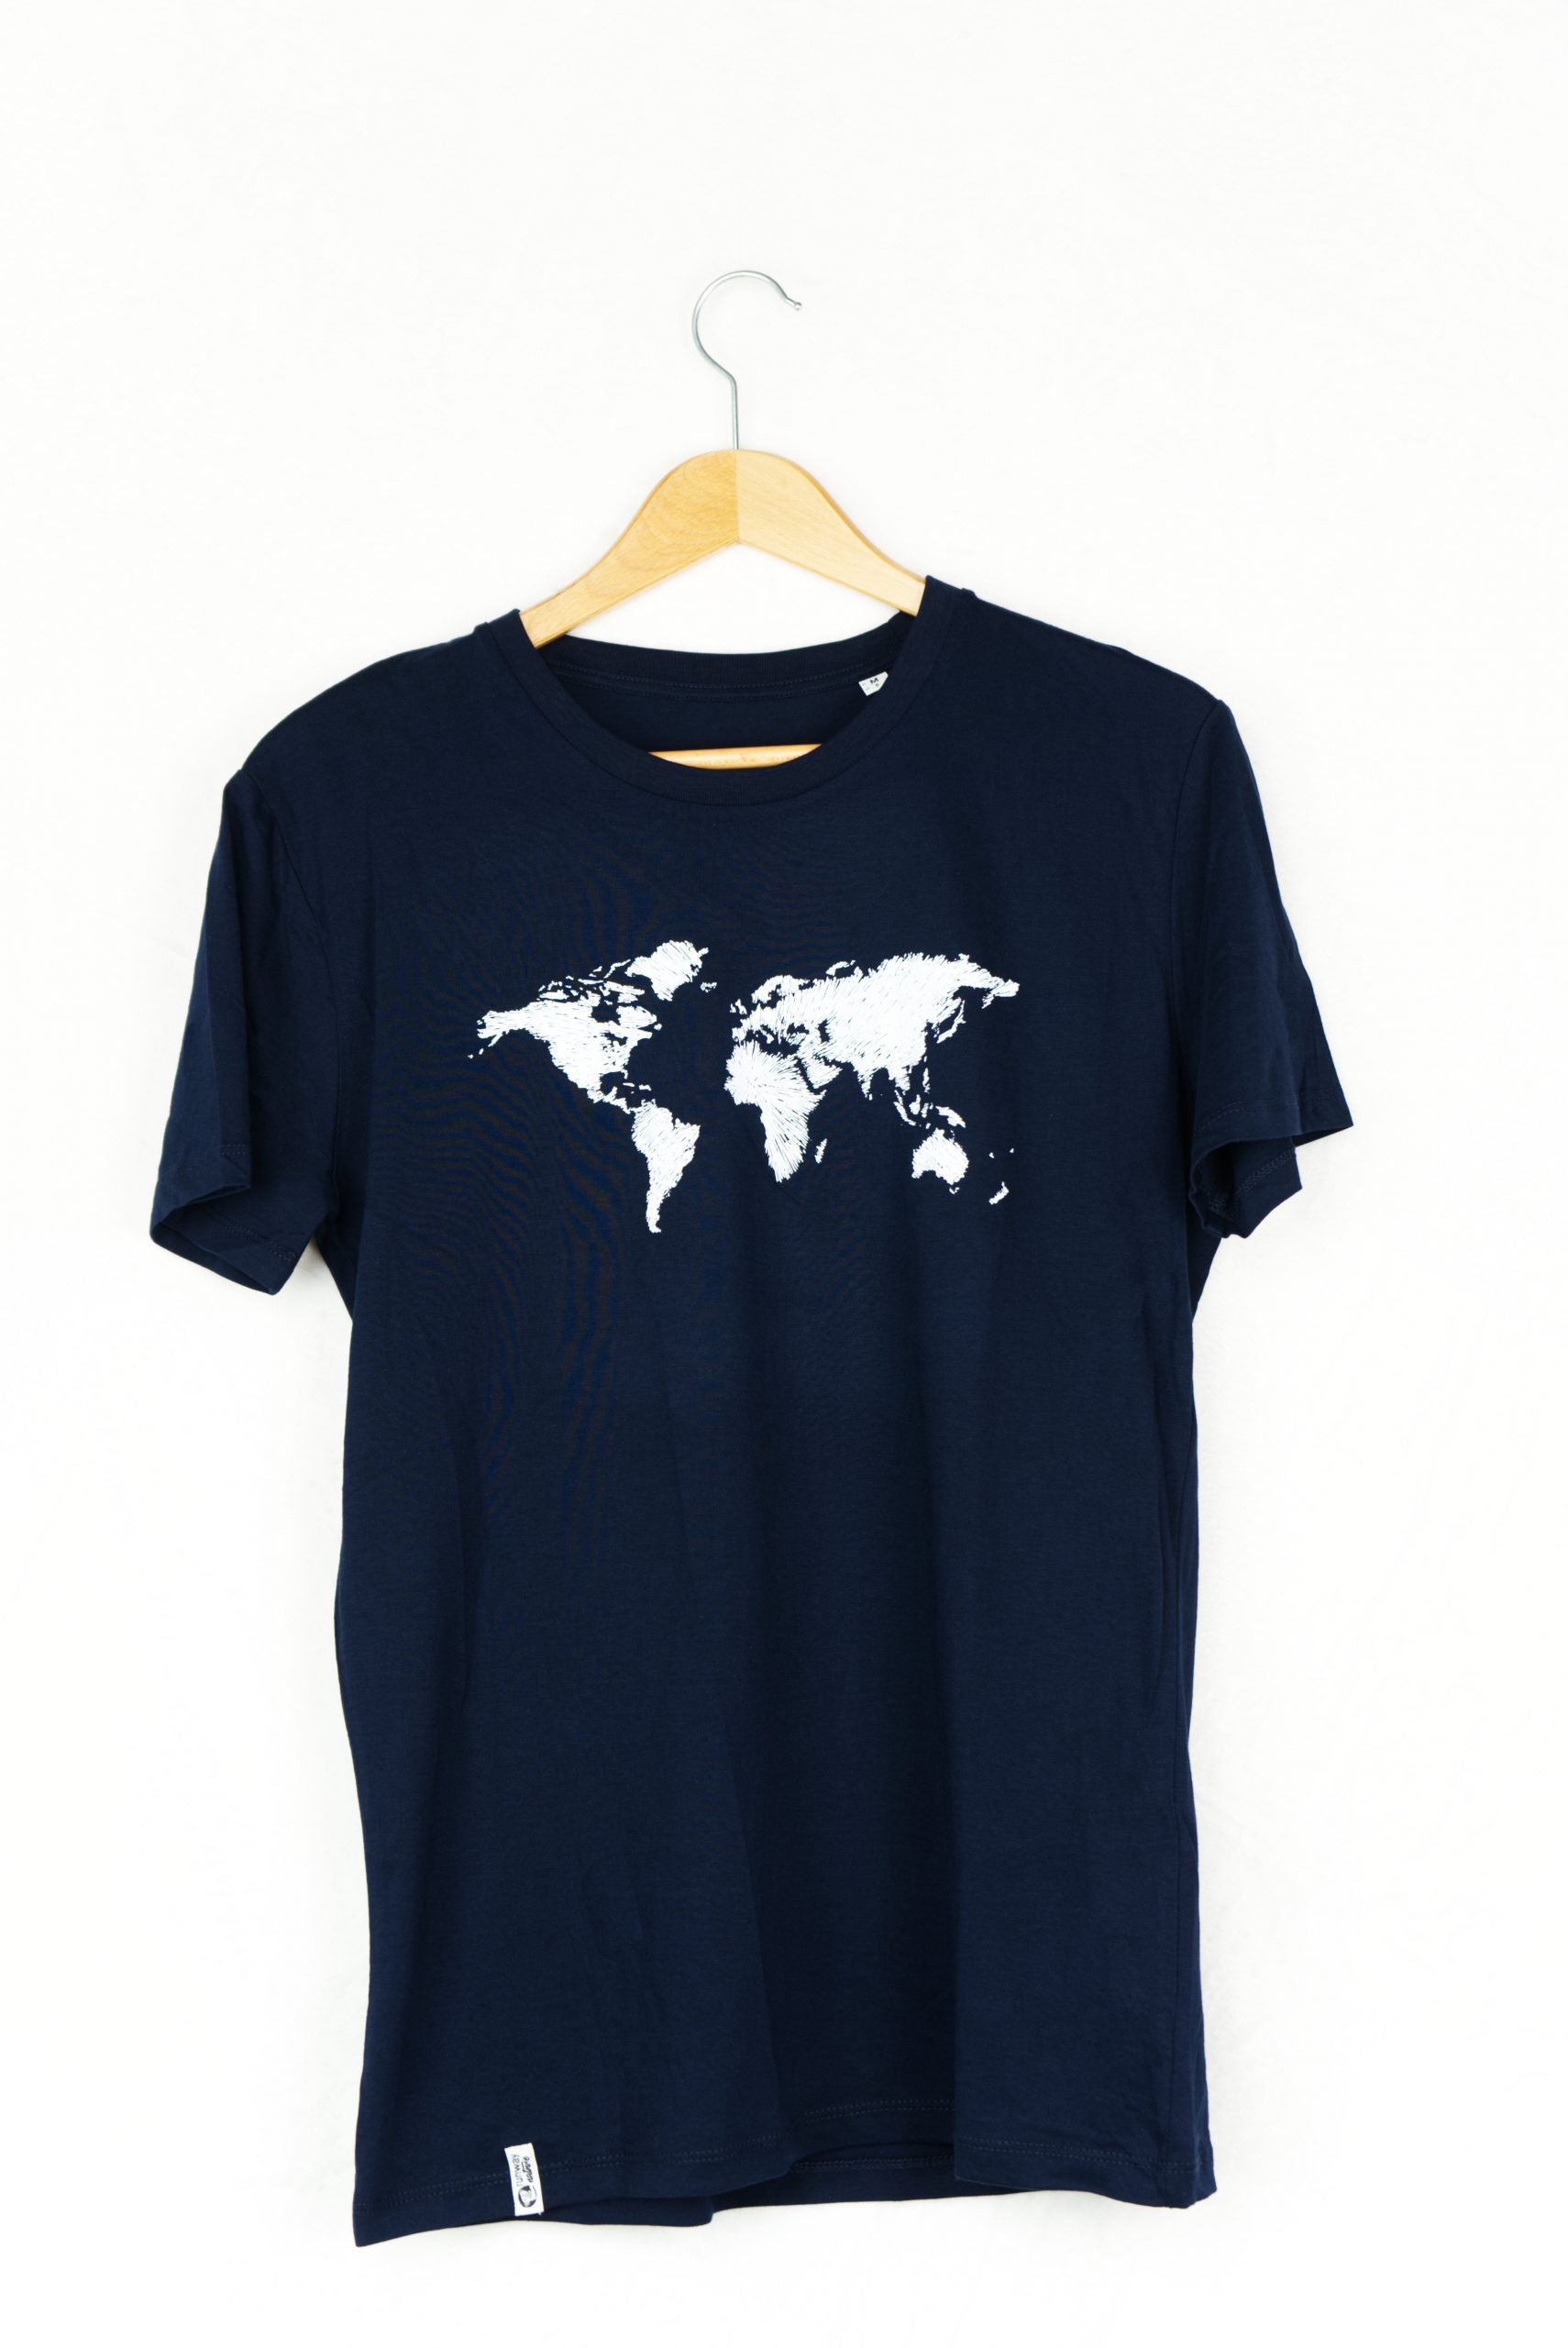 Our Planet Unisex Navy